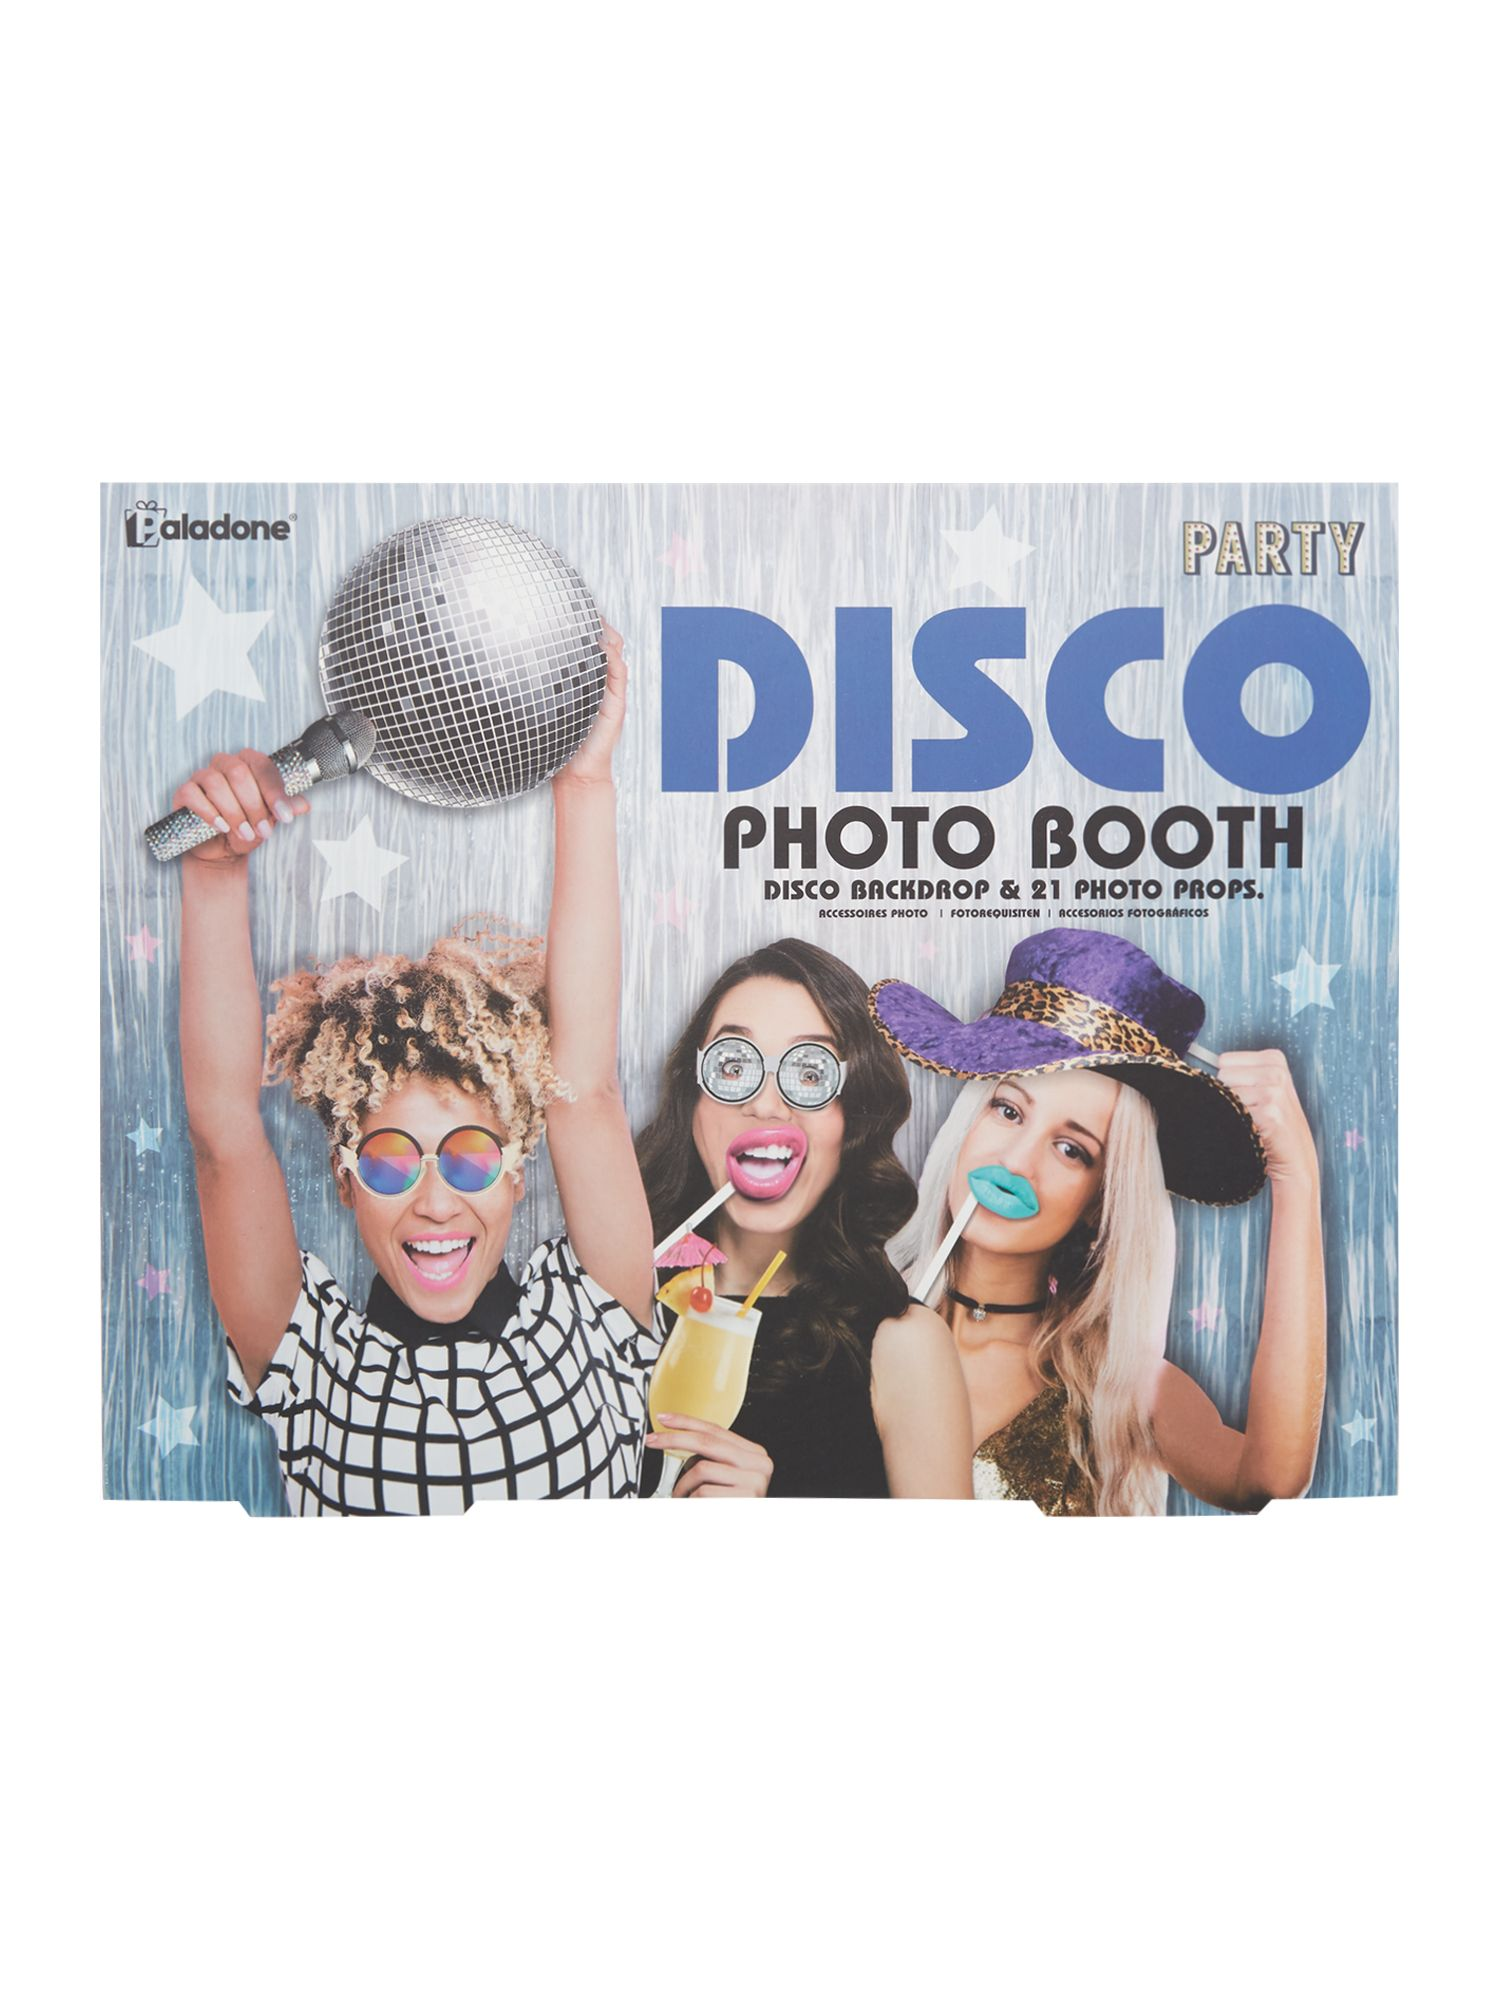 Disco Photo Booth, Camberley Photographic Equipment - Yell Star disco photo booth